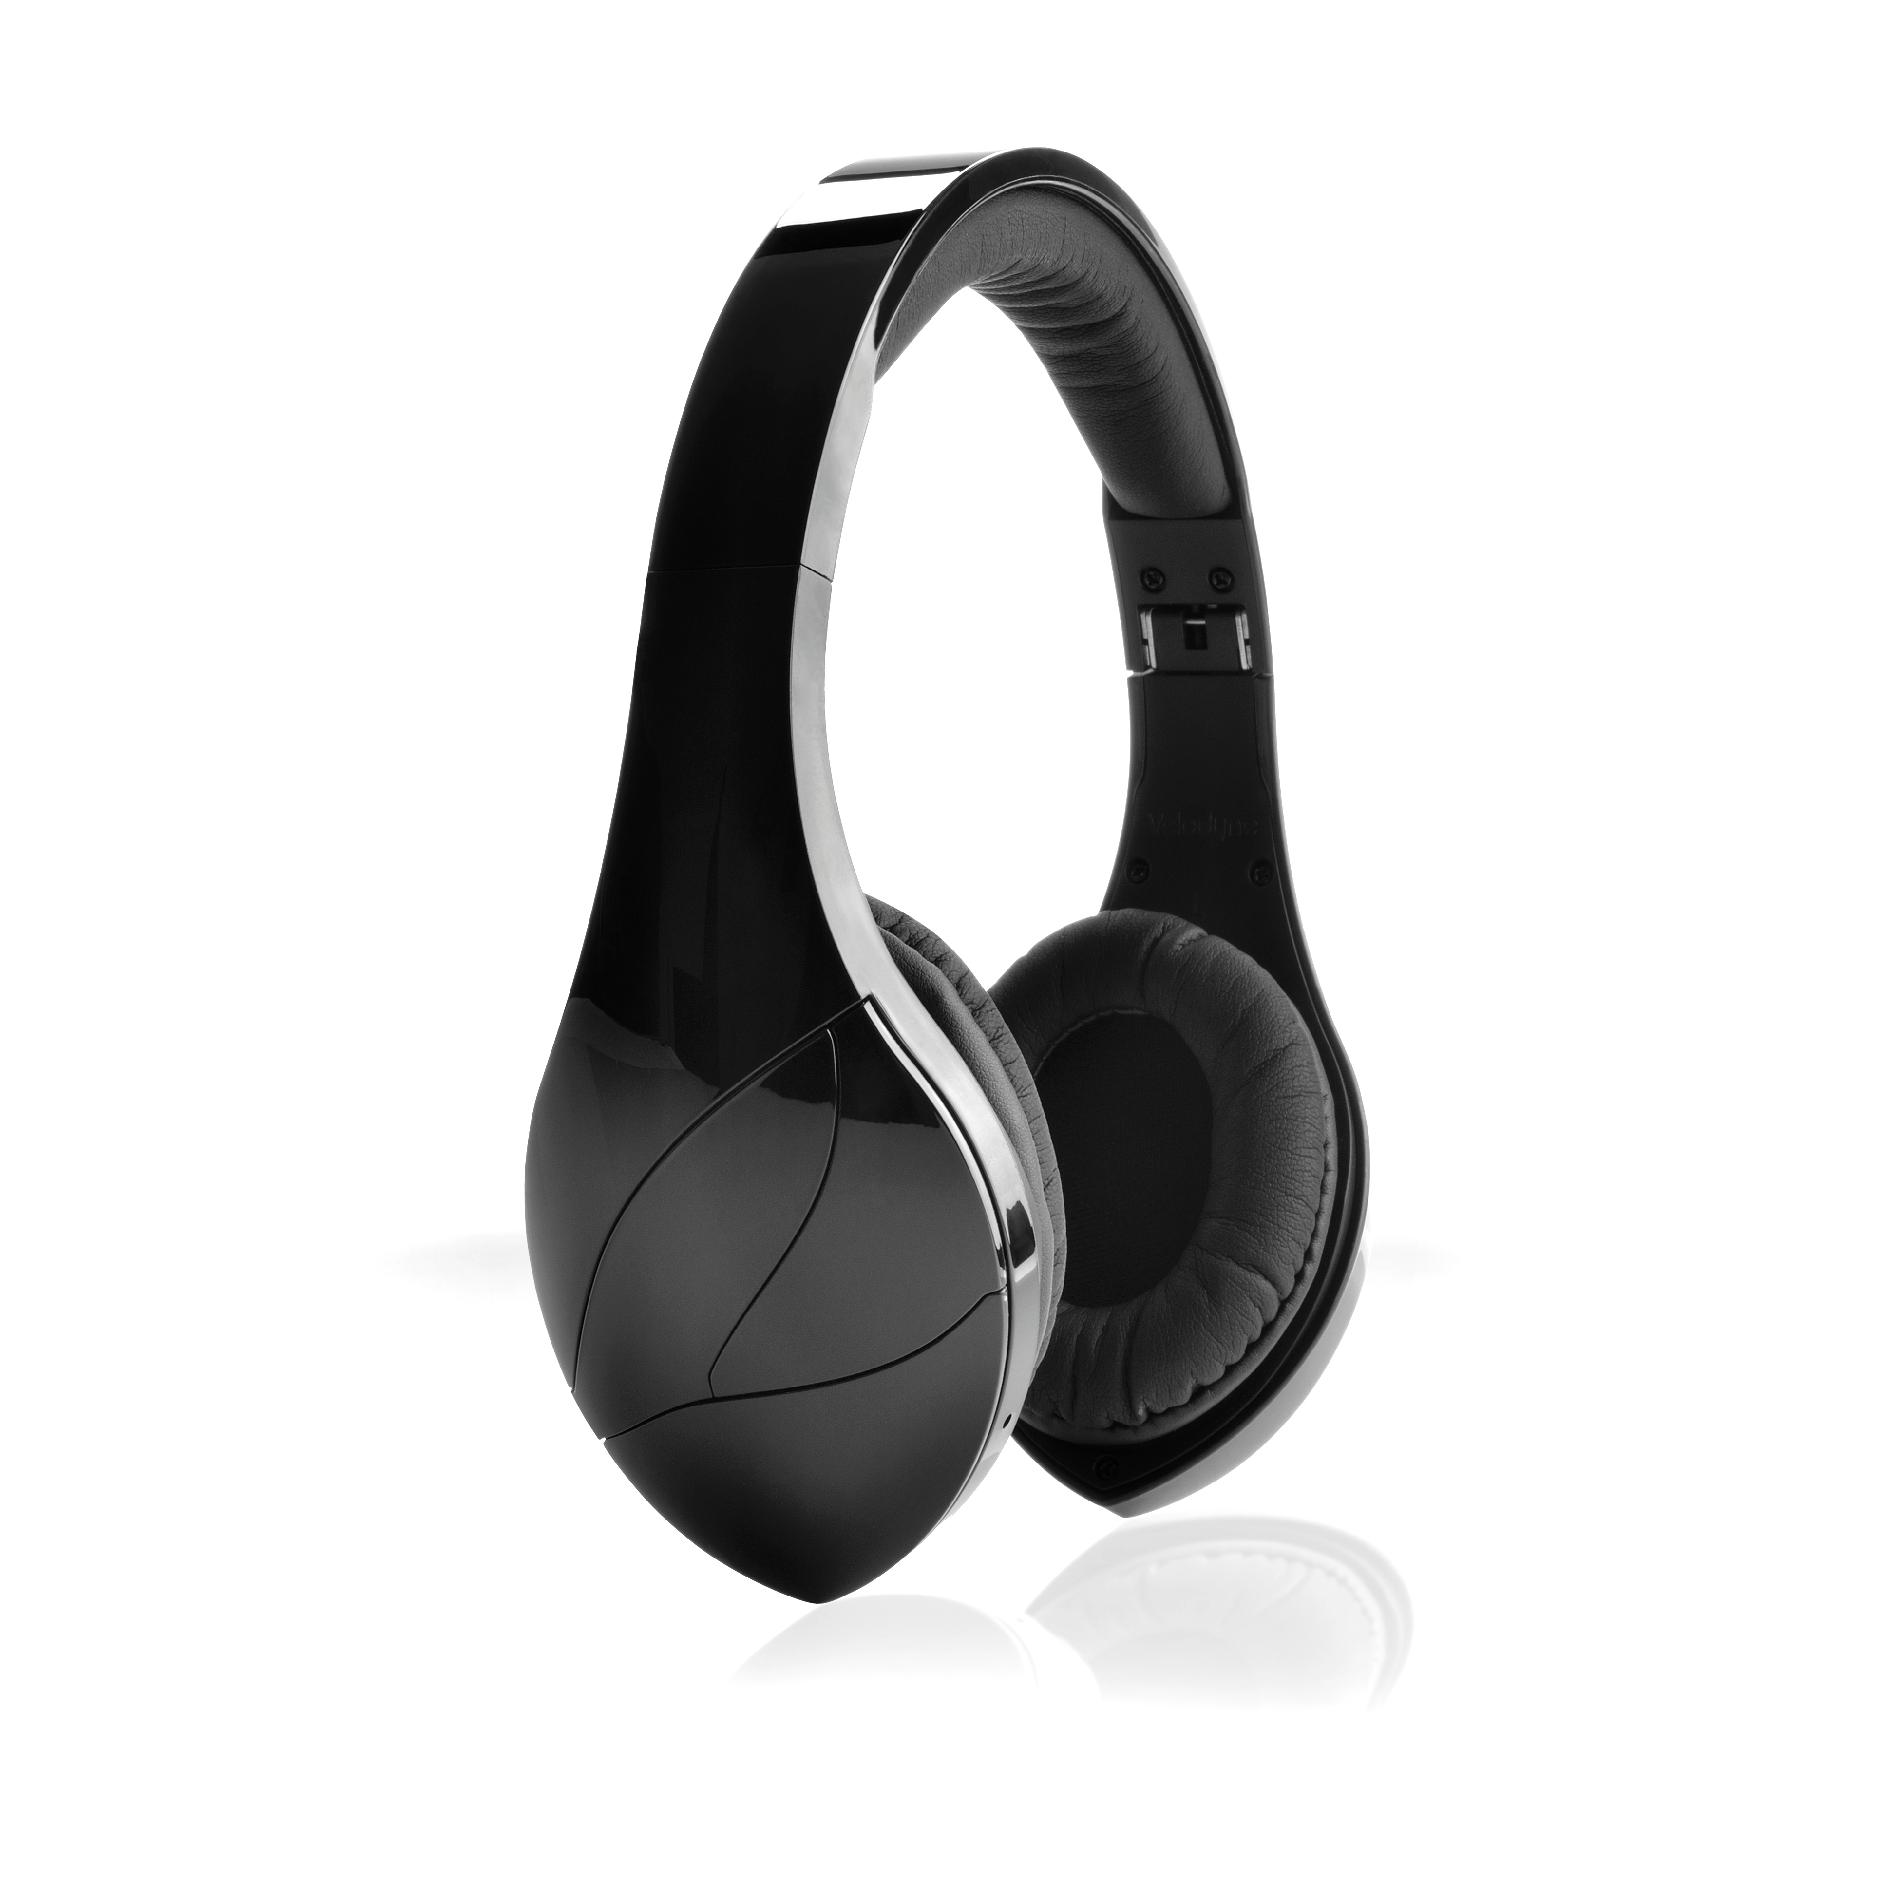 ilive wireless bluetooth headphones loud and clear with sears. Black Bedroom Furniture Sets. Home Design Ideas